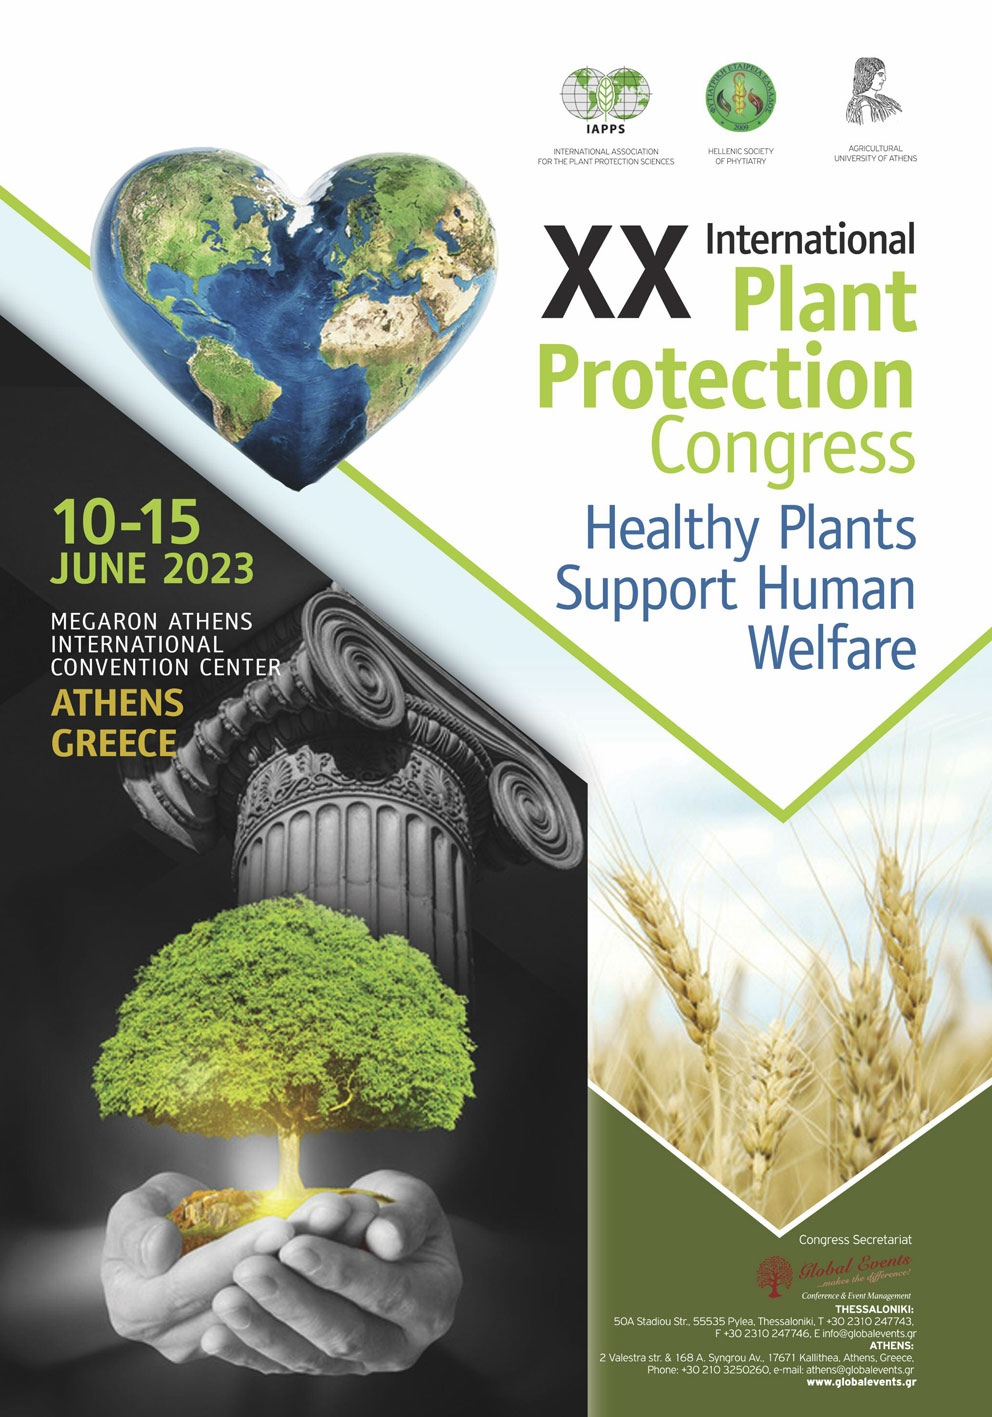 XX International Plant Protection Congress